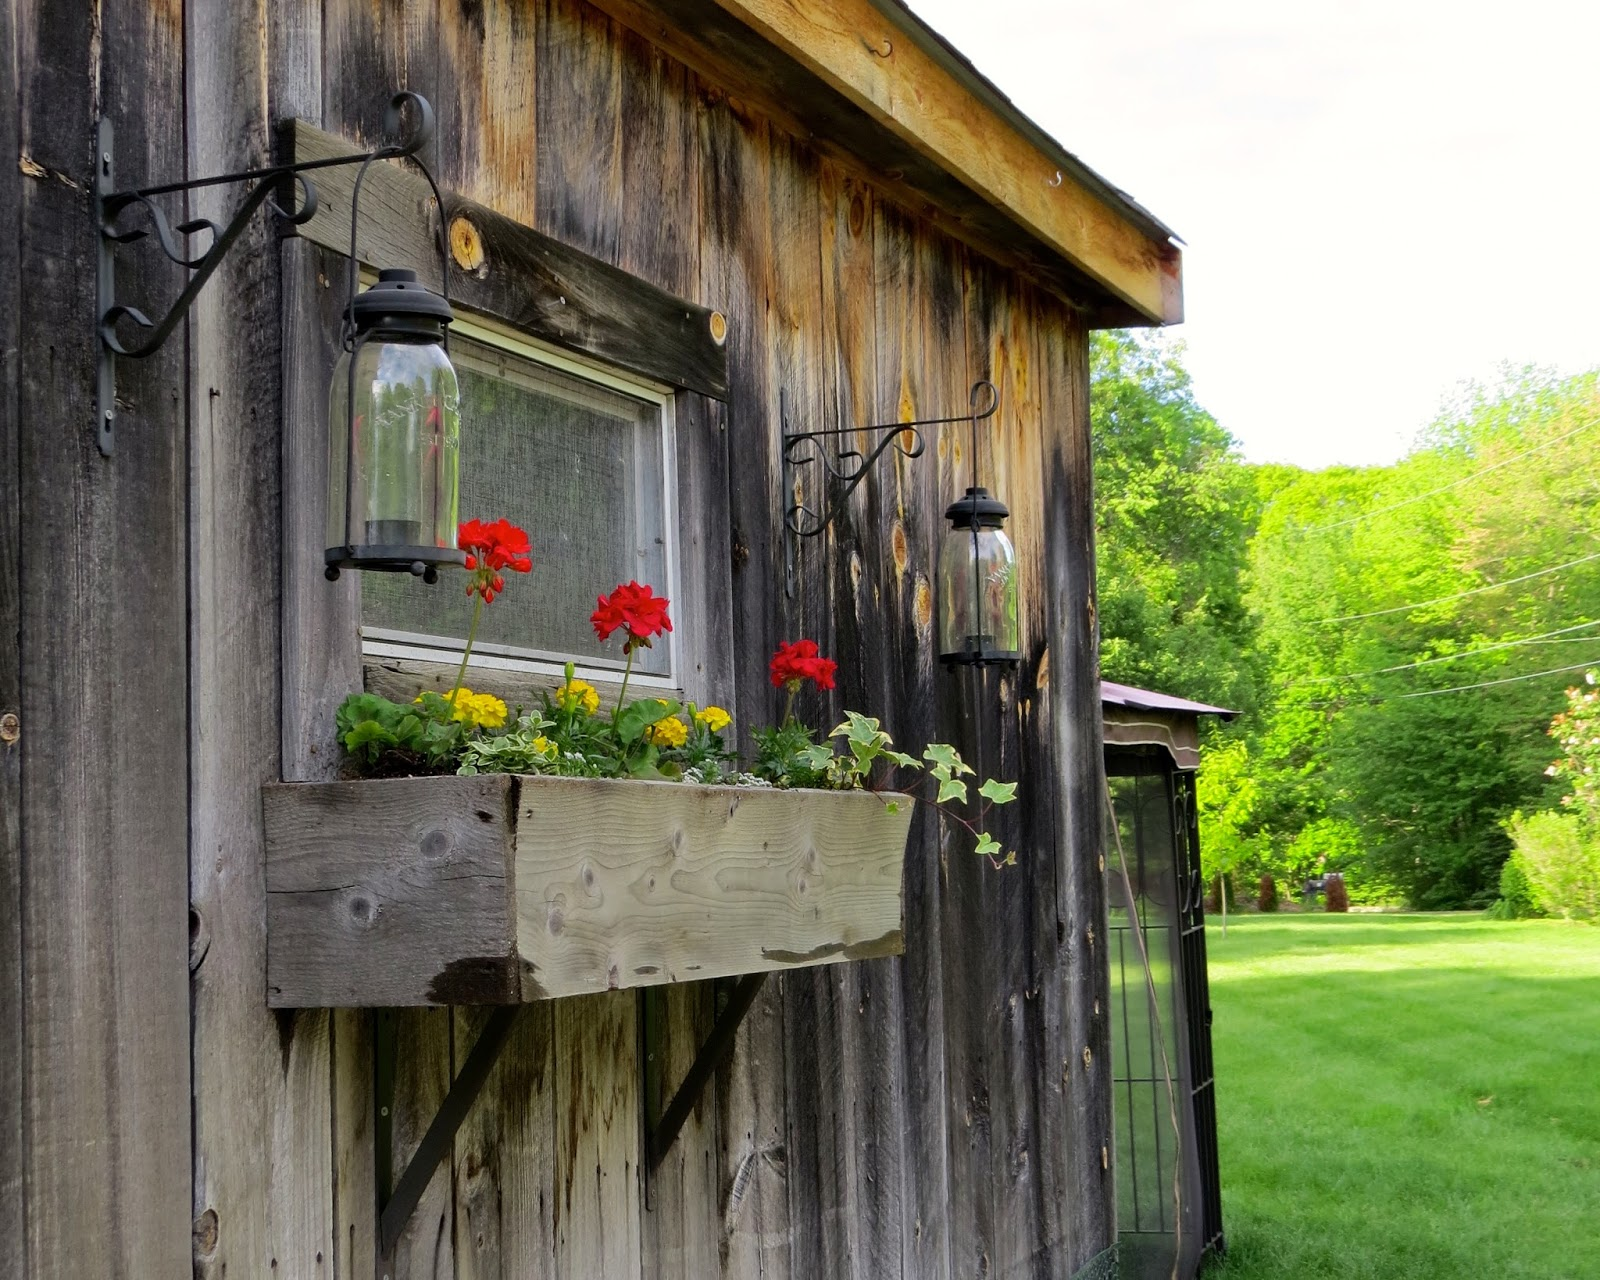 The Long Awaited Home: Our Great Big Summertime Yard Tour